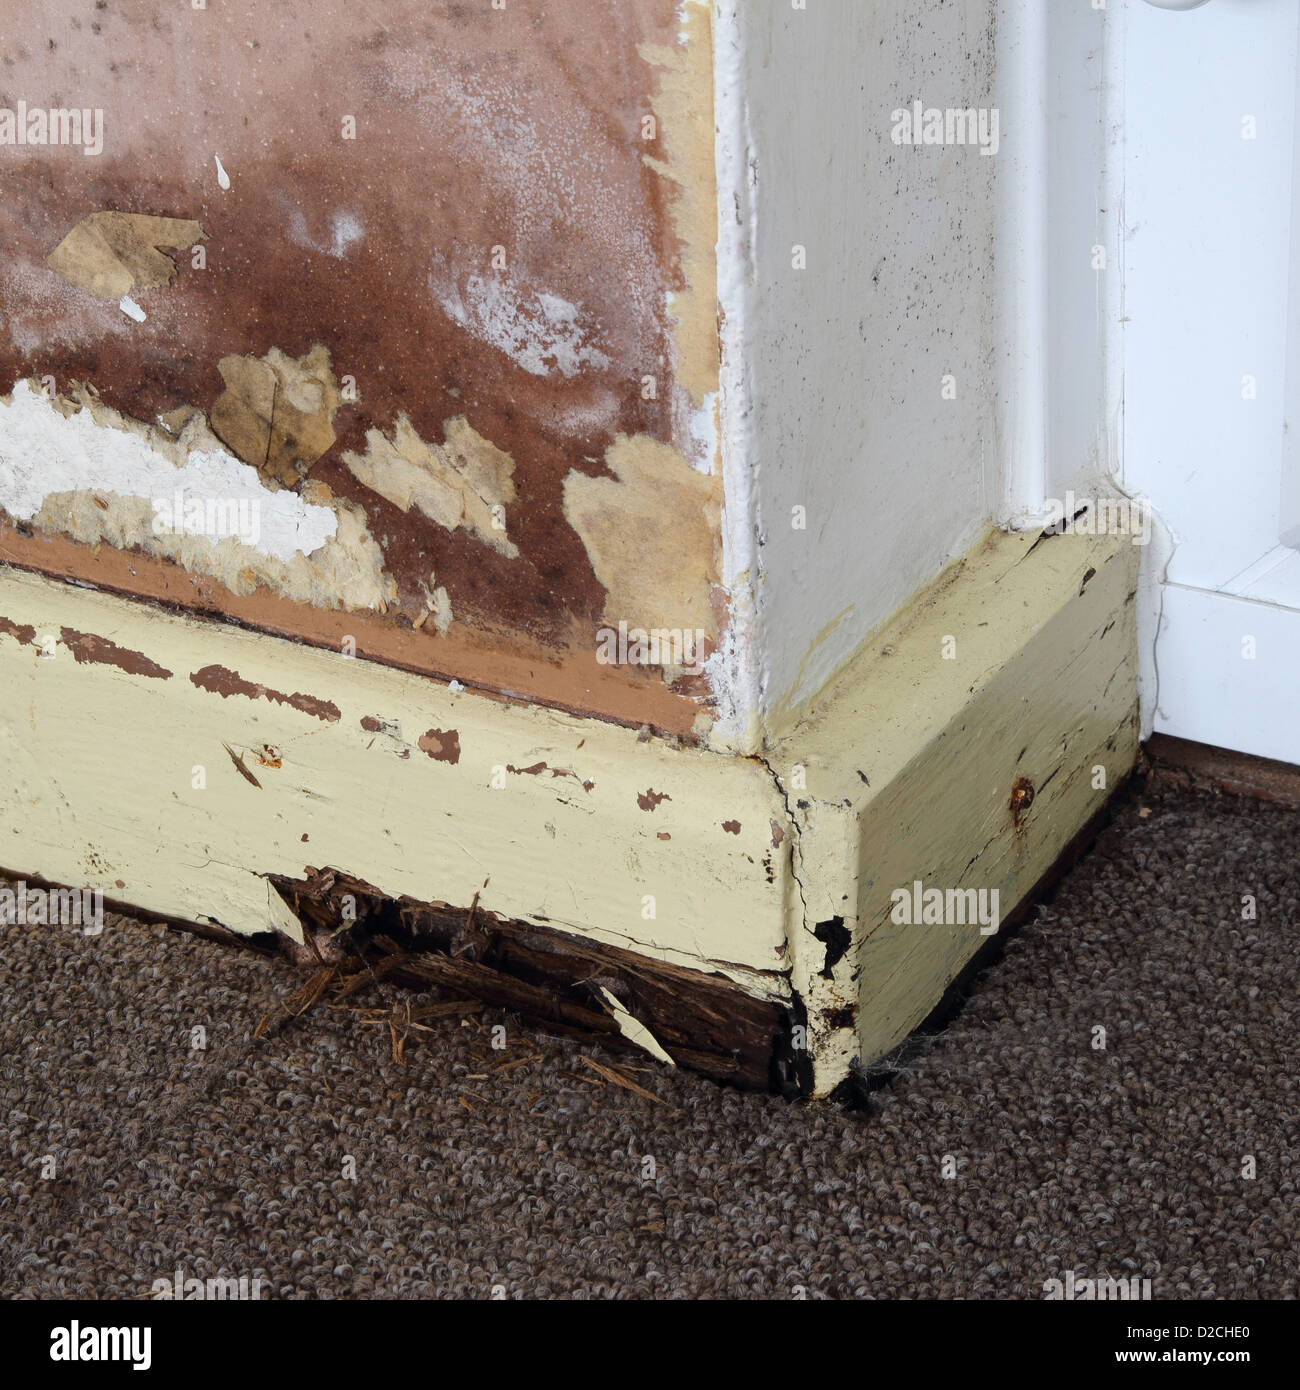 Rising Damp on an Internal Wall of a House with Rotten Skirting Board, UK PROPERTY RELEASED Stock Photo